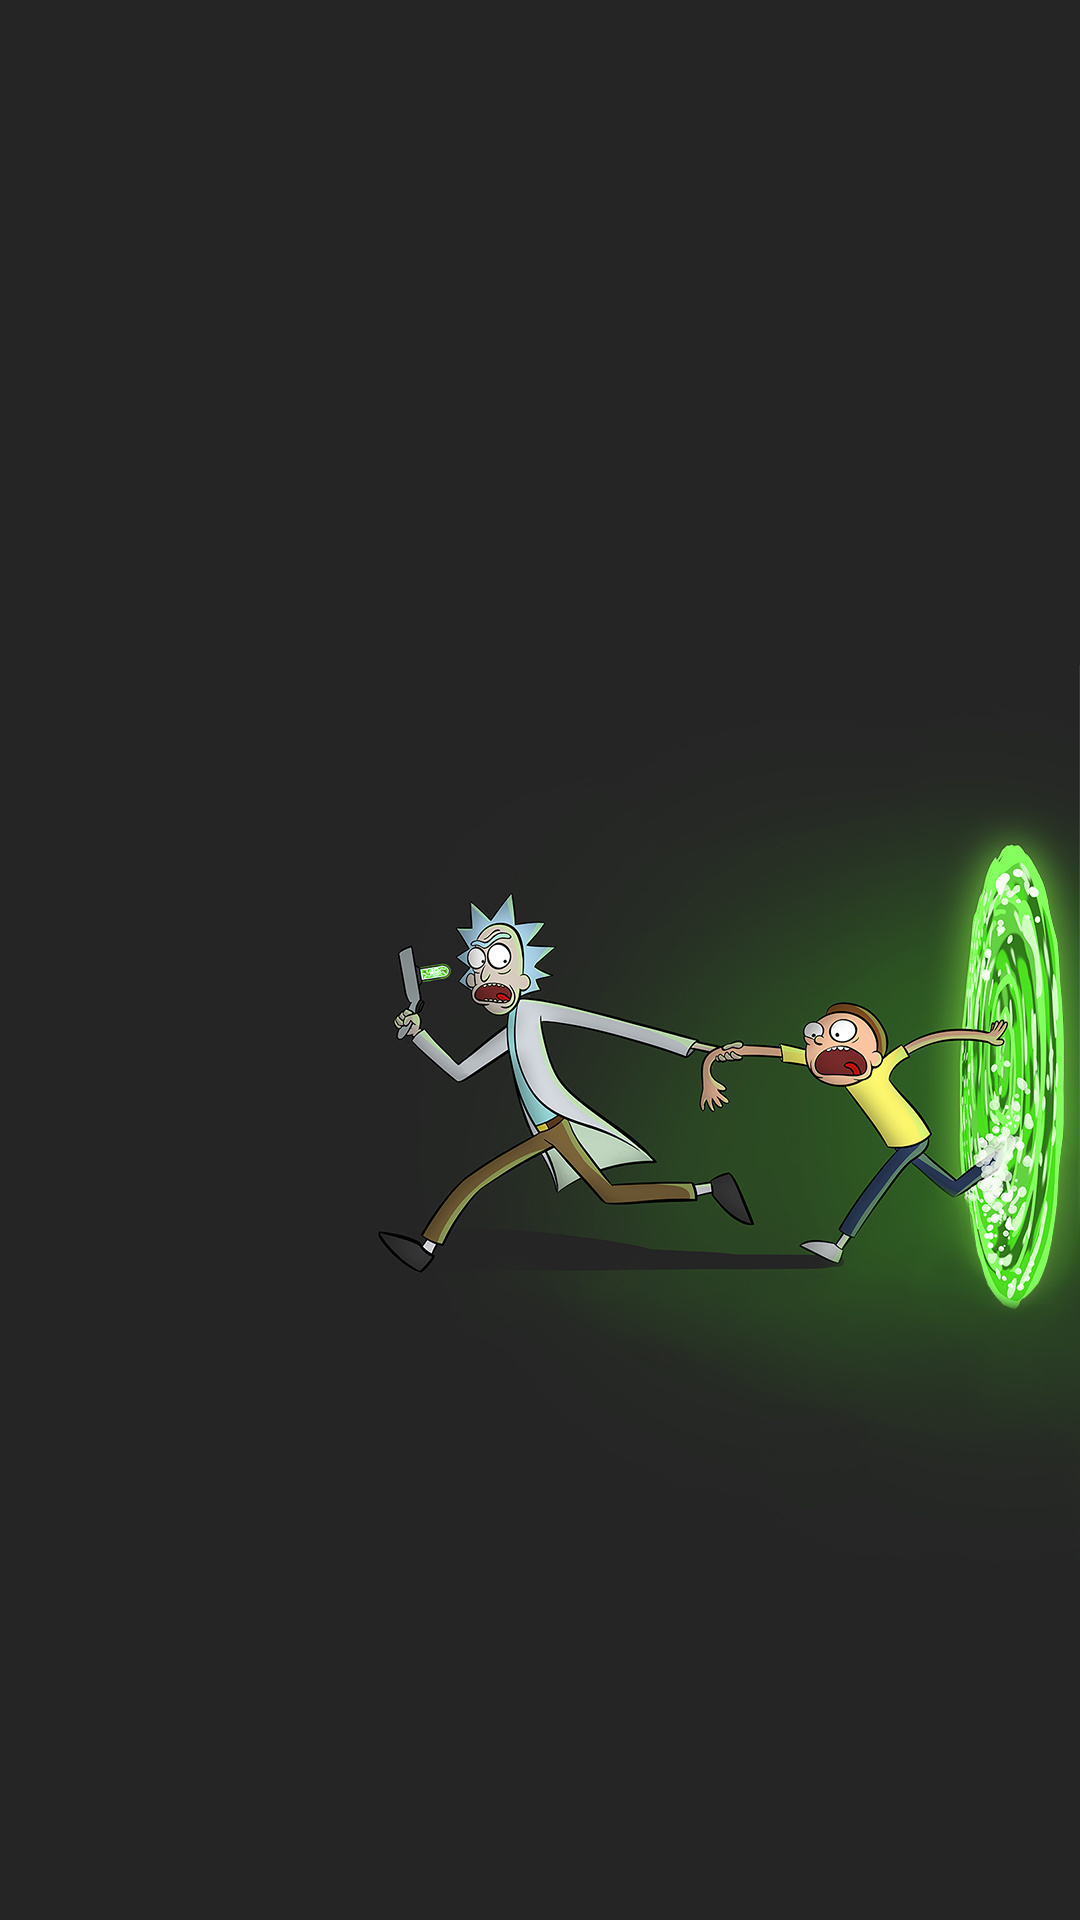 iPhone wallpaper rick and morty1 Rick and Morty